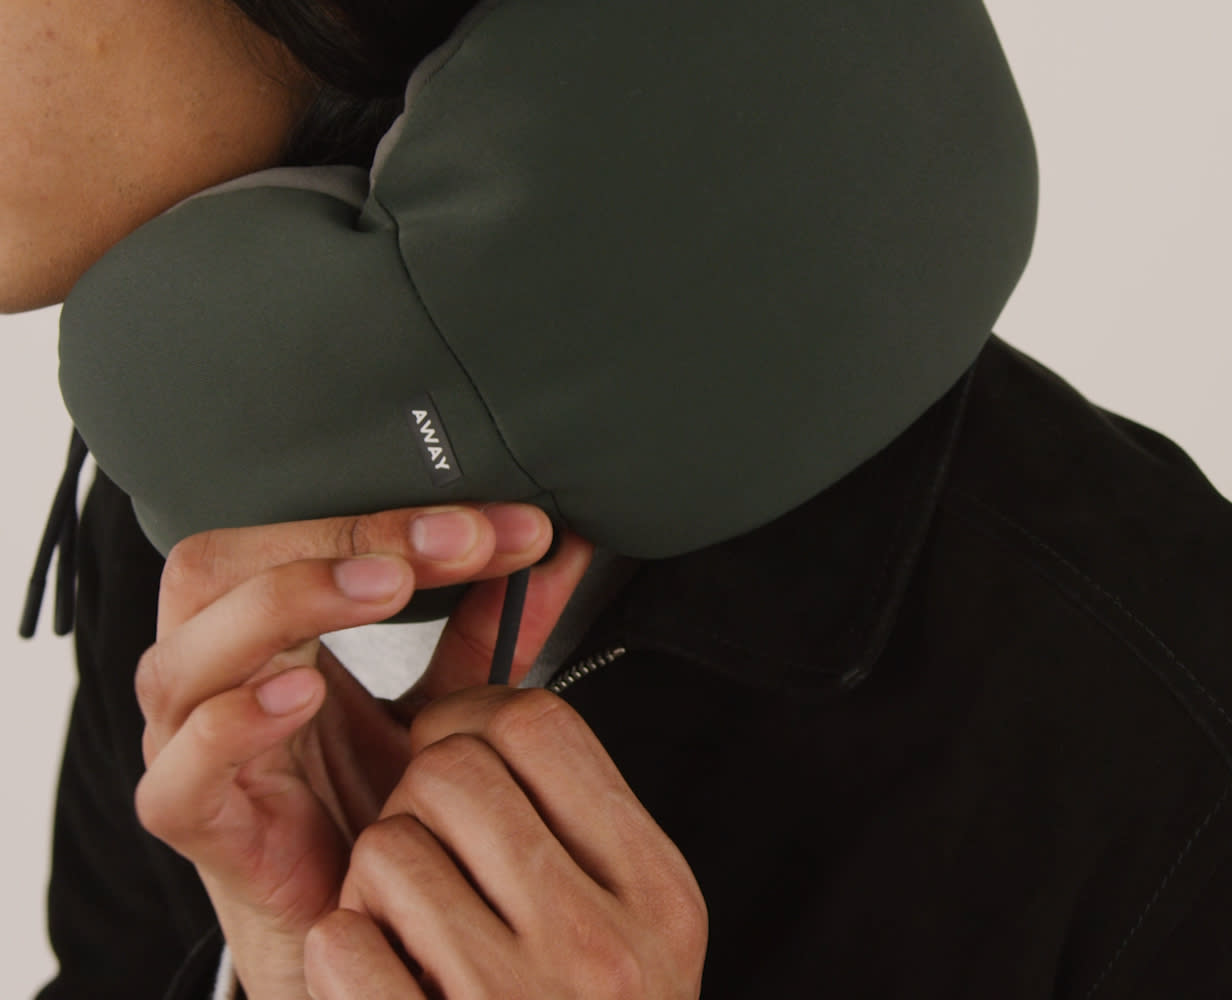 A person adjusting their Away travel neck pillow in green for comfort.